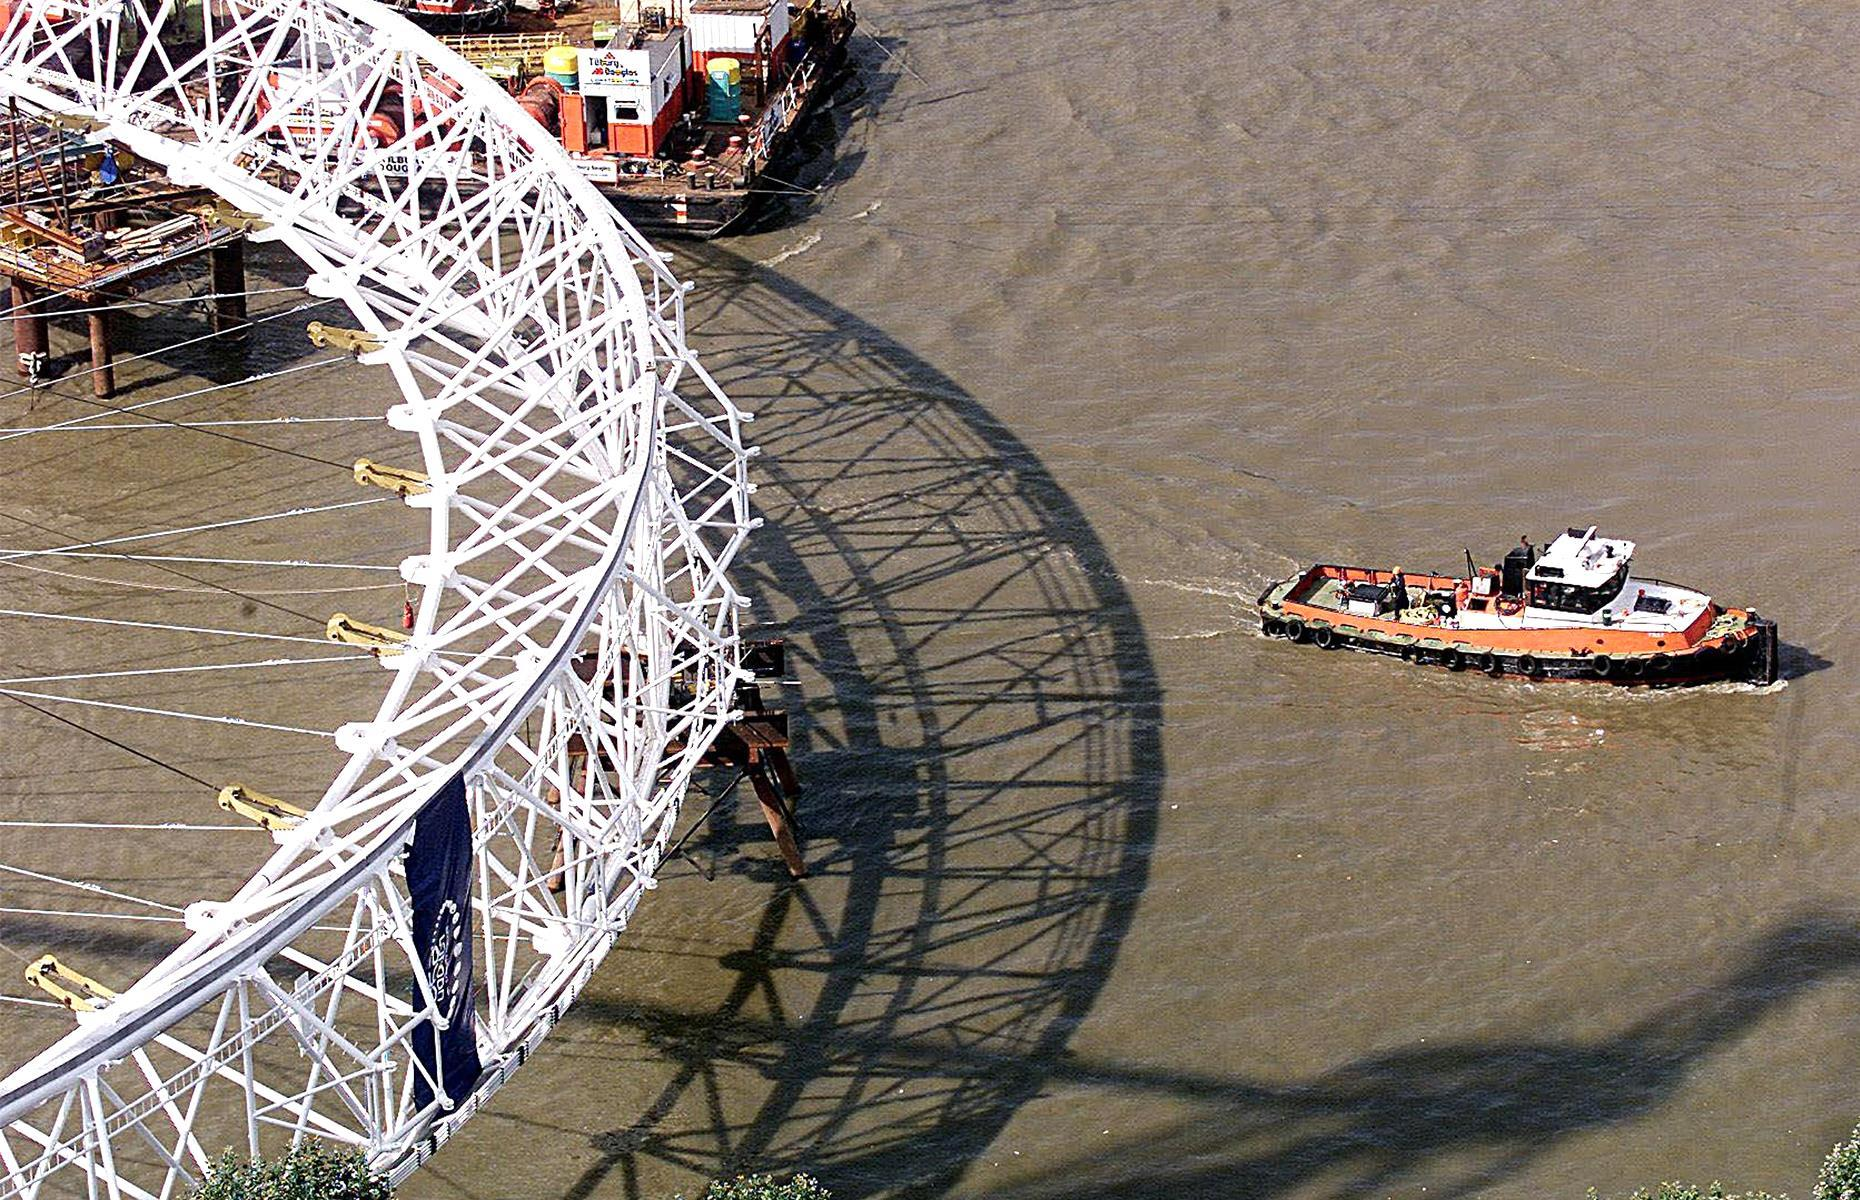 Slide 2 of 32: The London Eye was dreamt up in the 1990s by husband-and-wife architect team David Marks and Julia Barfield as part of a competition for a monument to mark the millennium. The competition ultimately didn't result in anything, but the Barfields decided to take the project forwards themselves. Construction of the now-famous London landmark began in 1998 and it's pictured here in 1999, laying horizontally across the River Thames ready to be lifted into position.